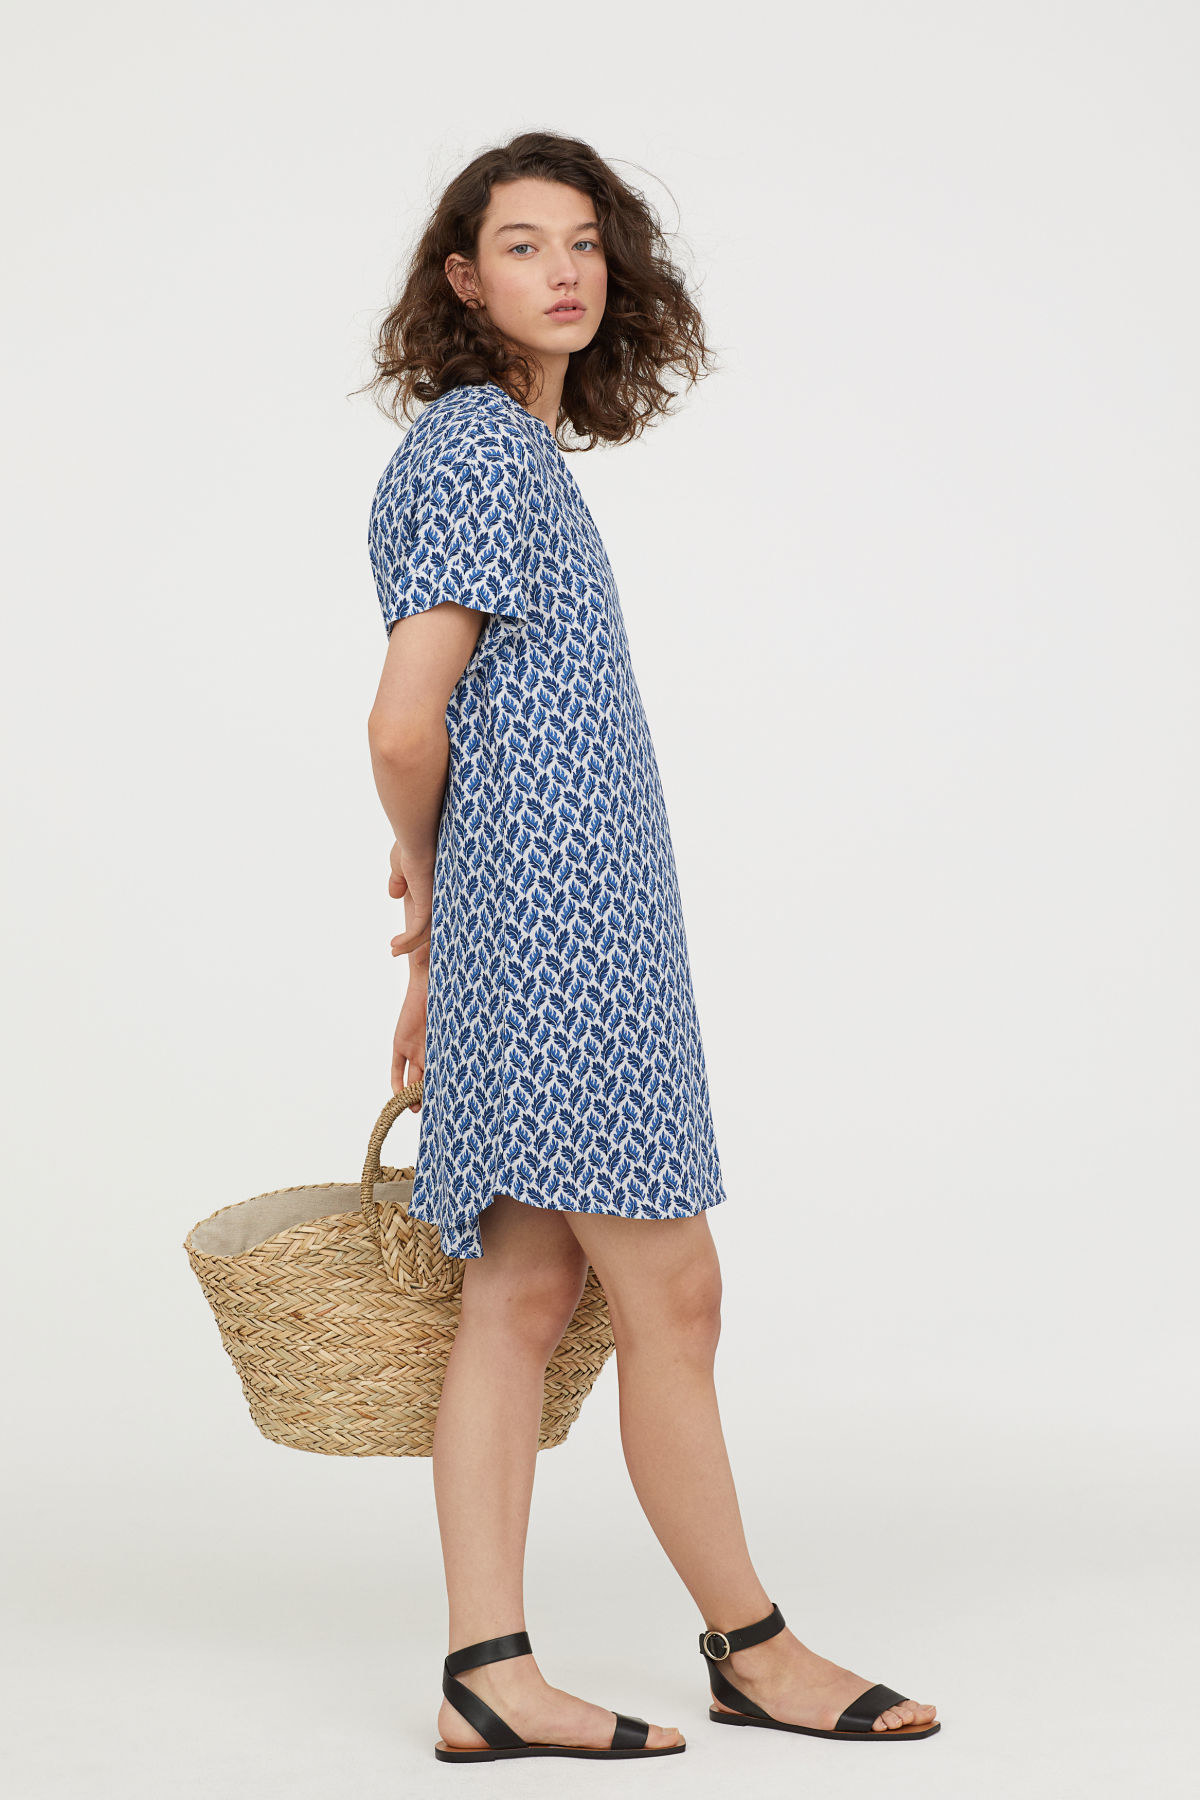 Get it from H&M for $24.99 (available in sizes 0-18 and in three colors).